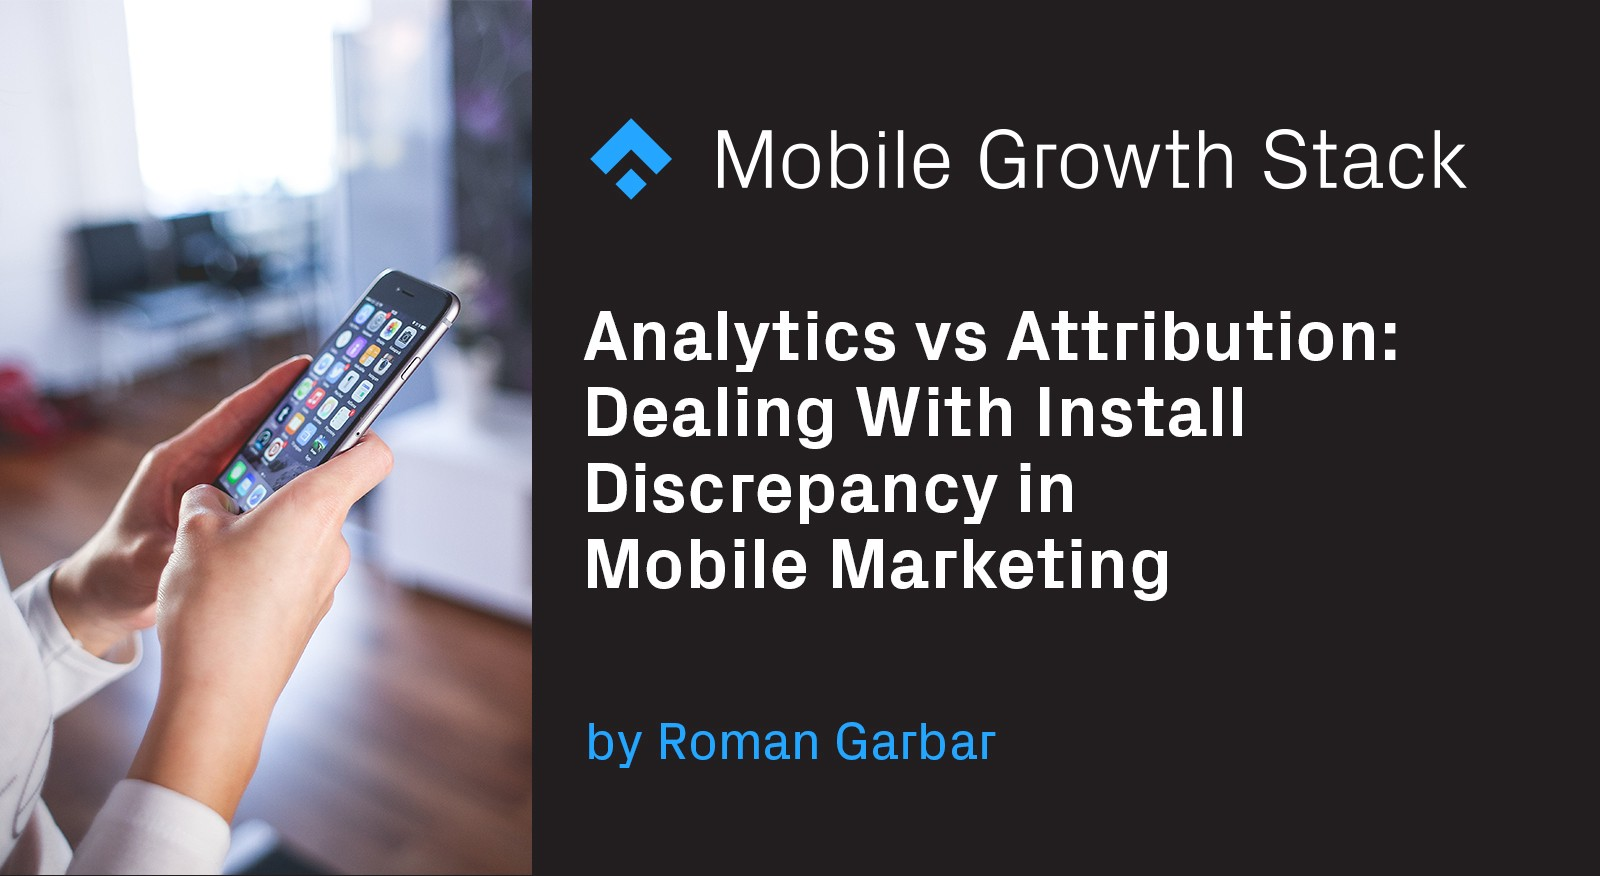 Analytics vs Attribution: Dealing With Install Discrepancy in Mobile Marketing